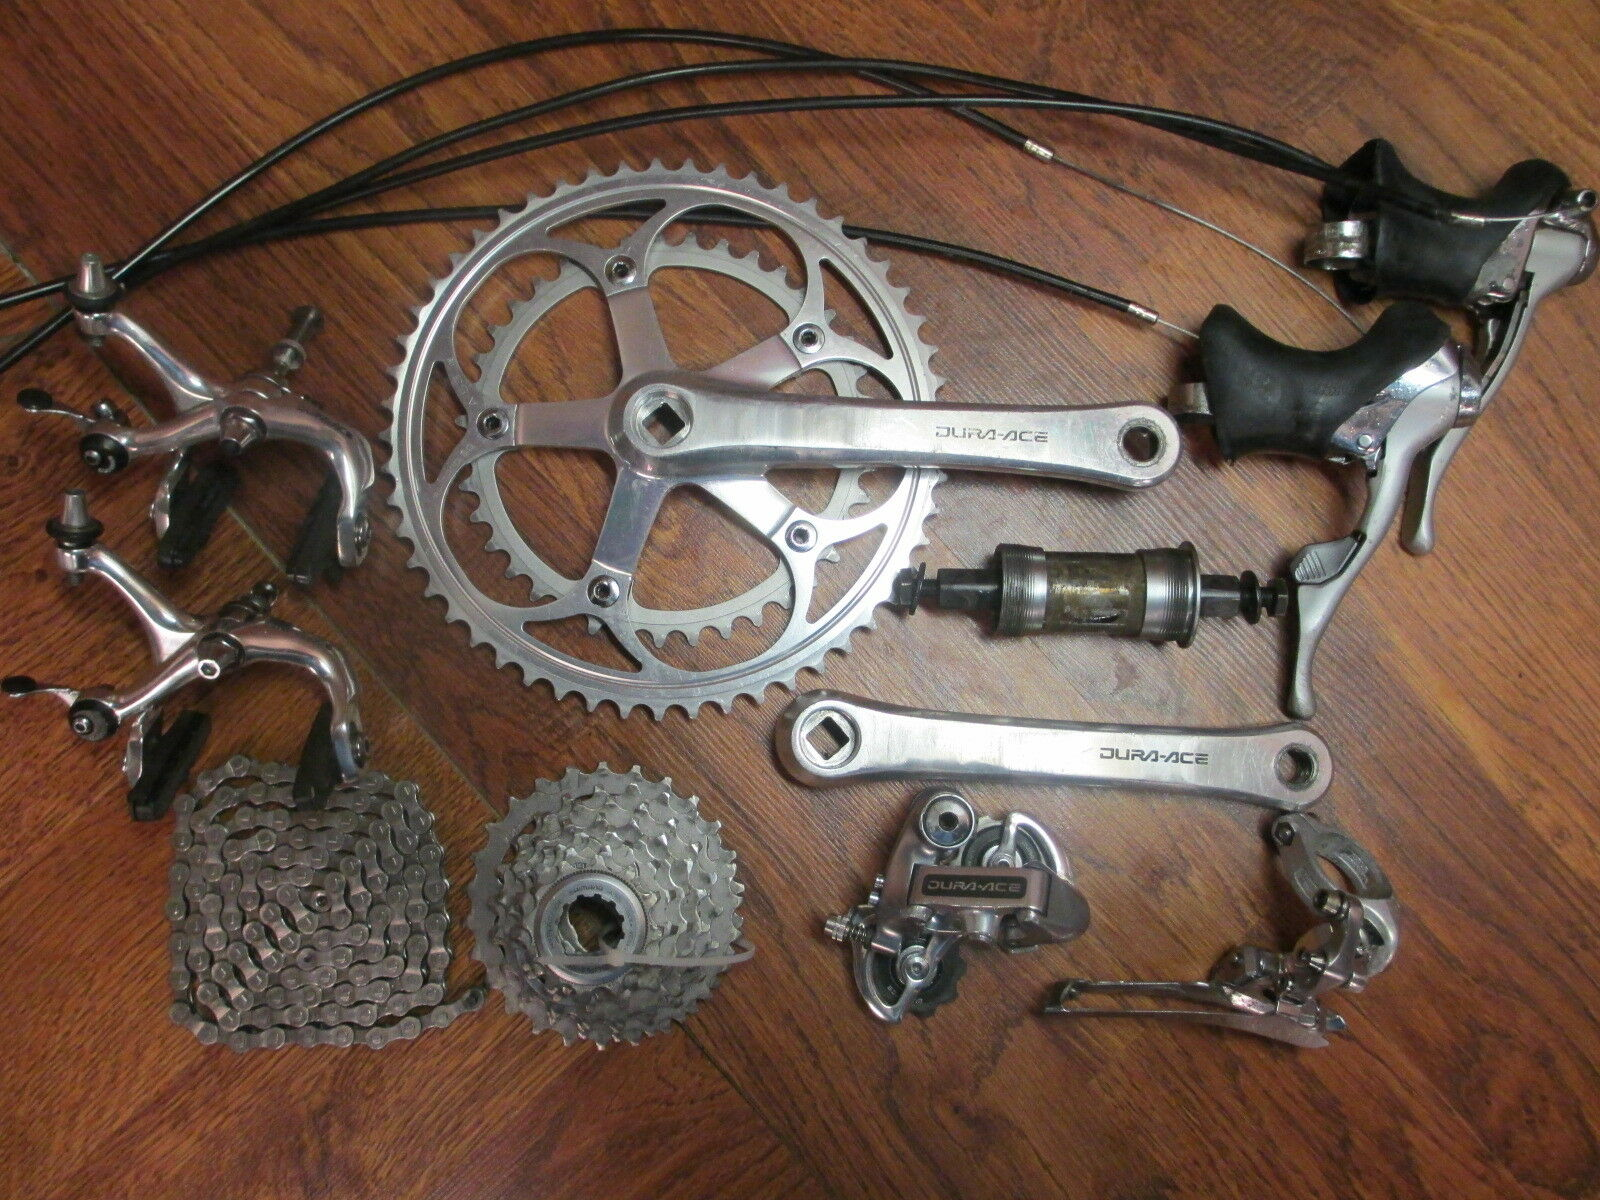 VINTAGE SHIMANO DURA ACE  7402 GROUP GROUPPO COMPLETE BUILD KIT 8 SPEED DOUBLE  for your style of play at the cheapest prices